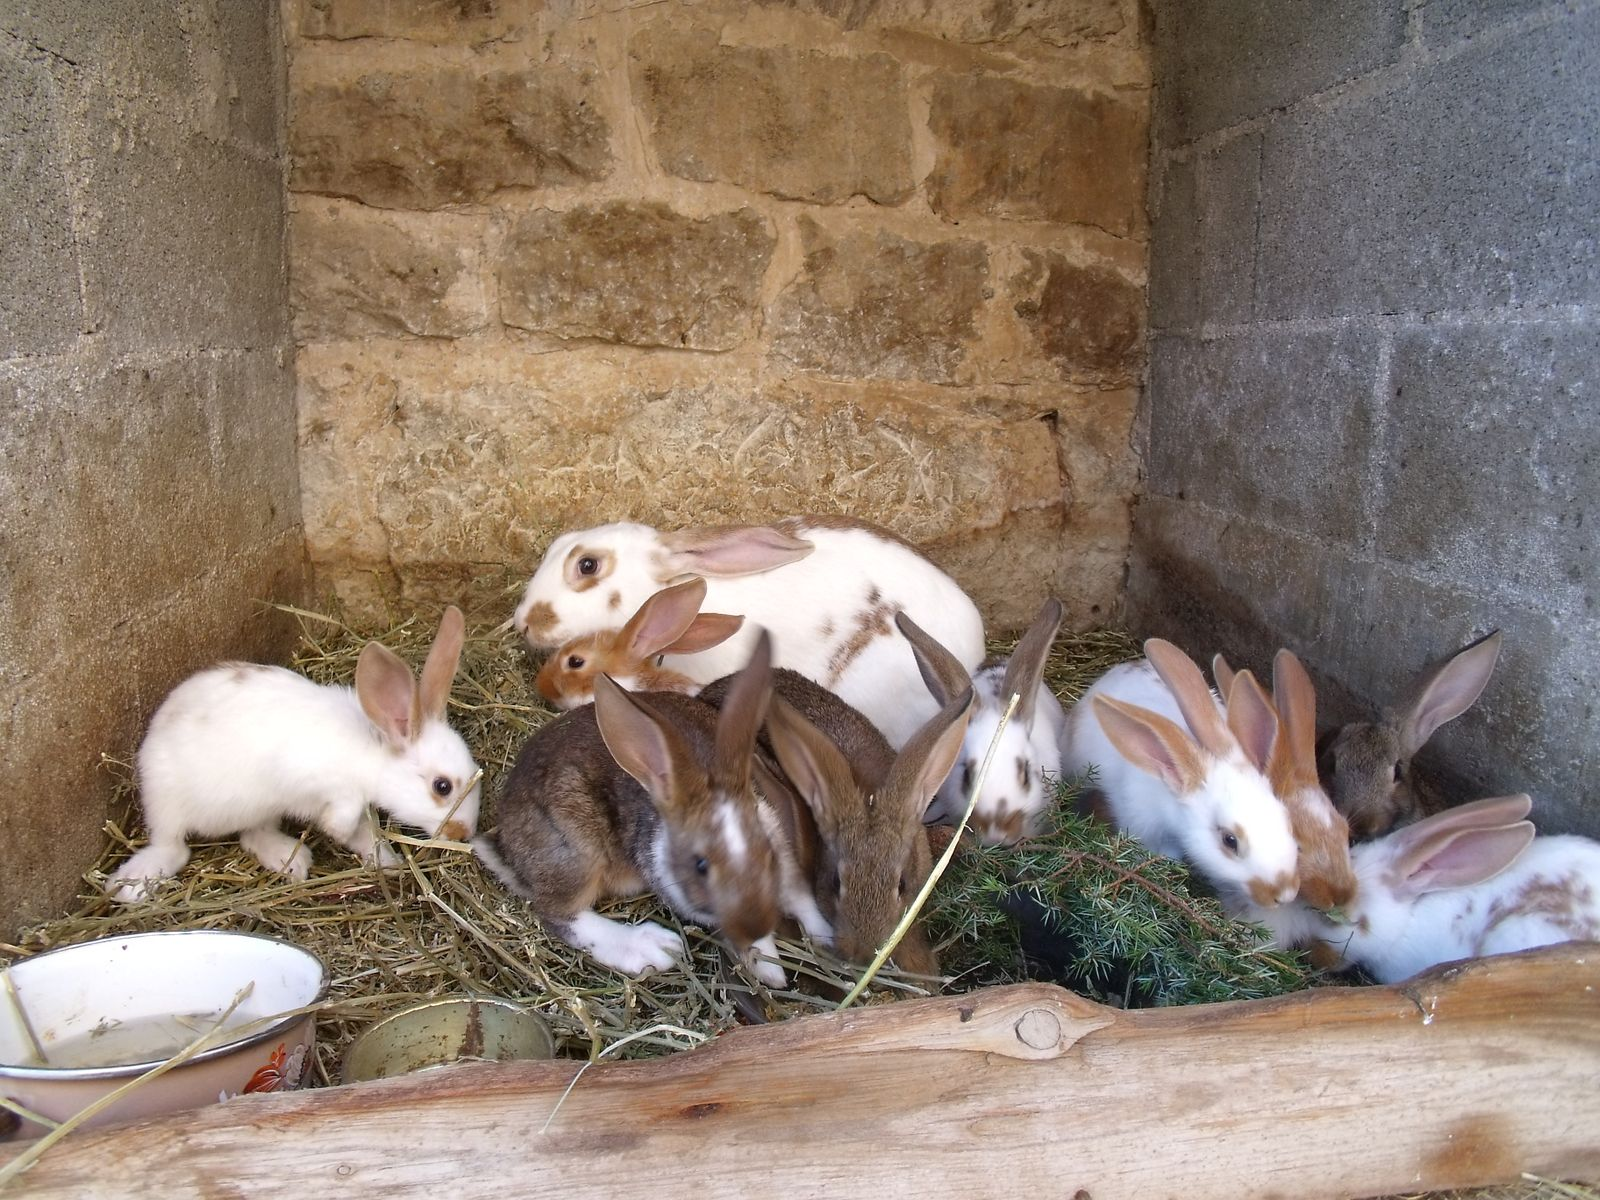 Mes petits lapins attendent vos caresses